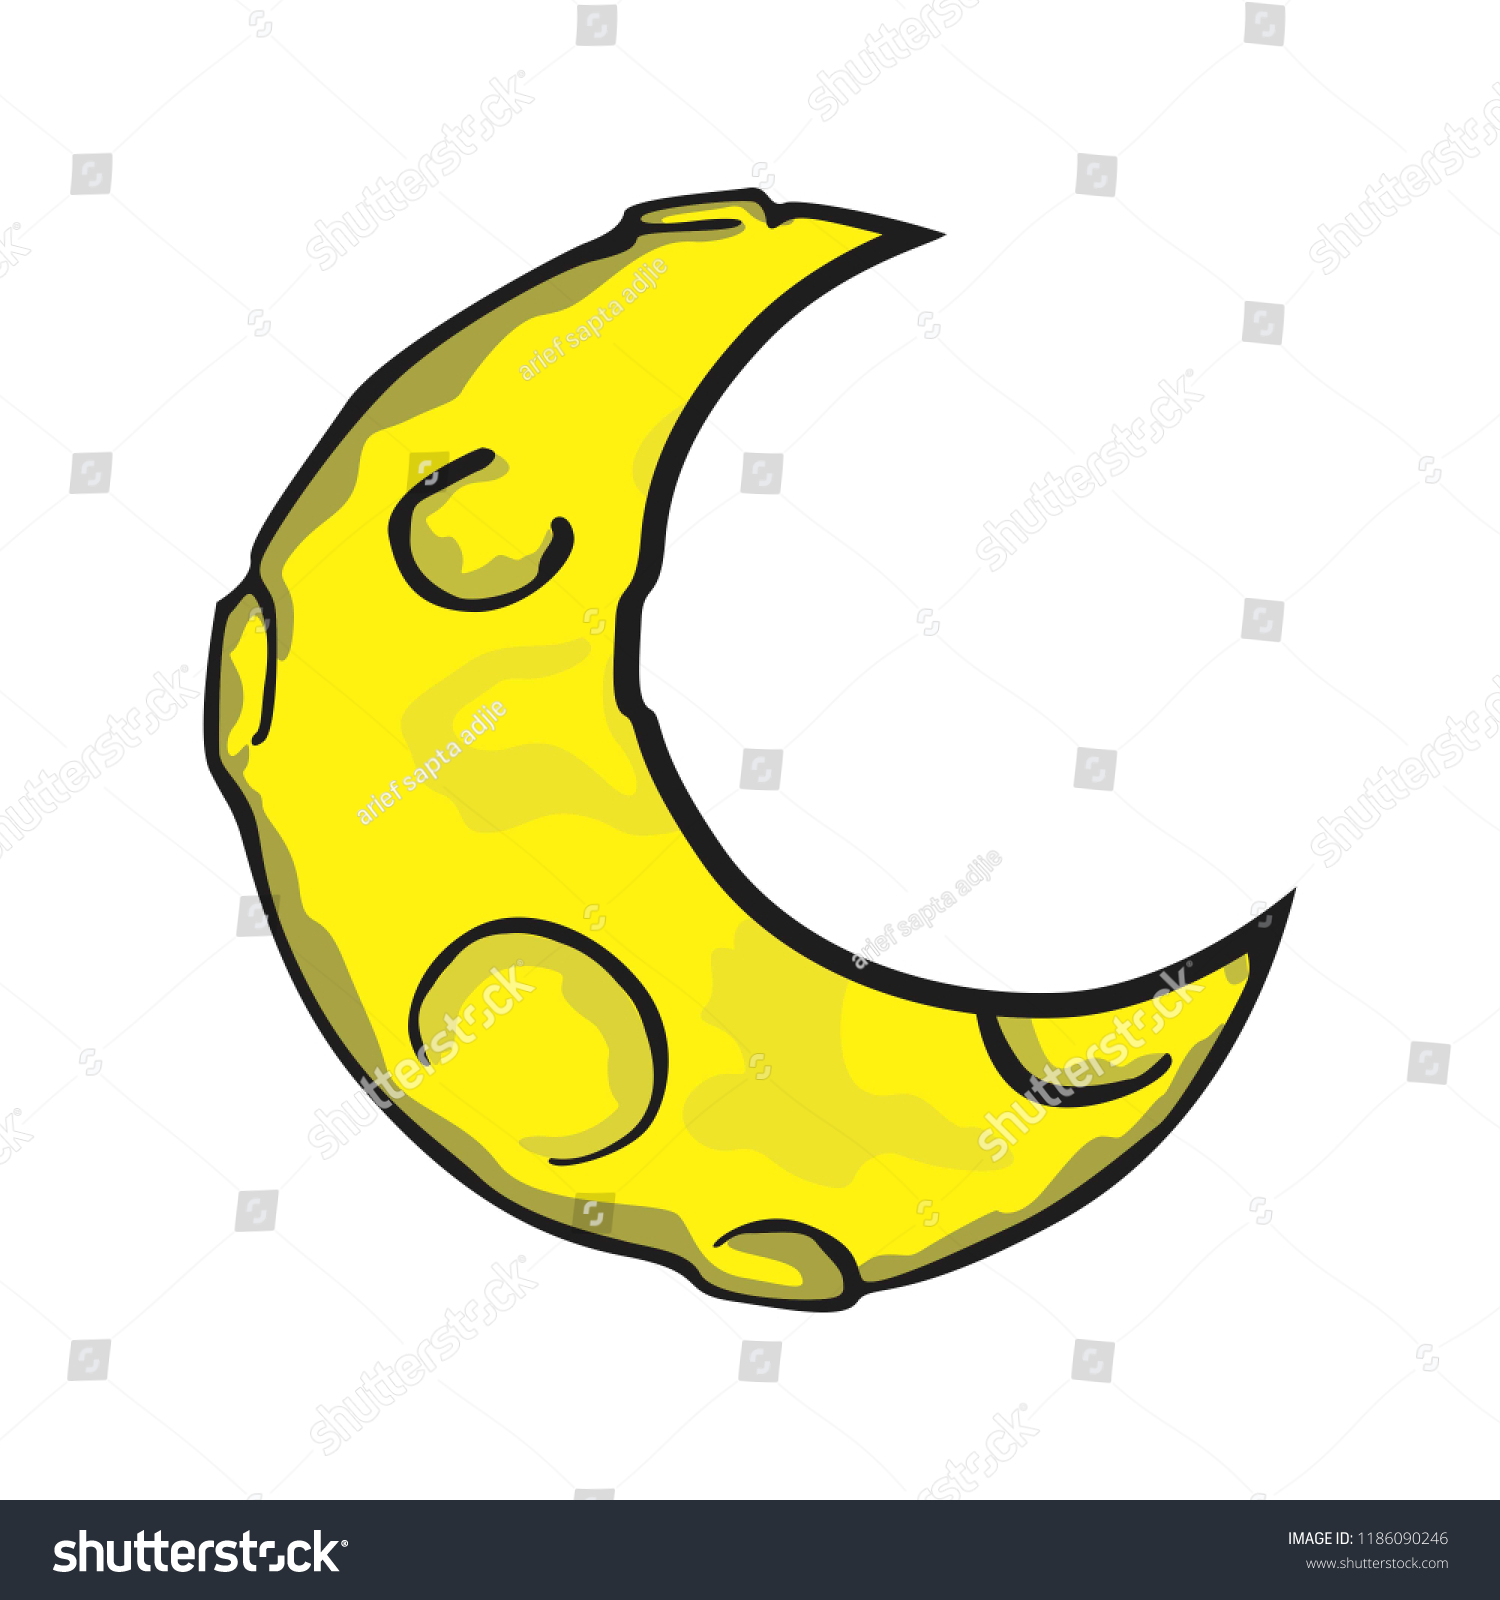 crescent moon vector stock vector royalty free 1186090246 https www shutterstock com image vector crescent moon vector 1186090246